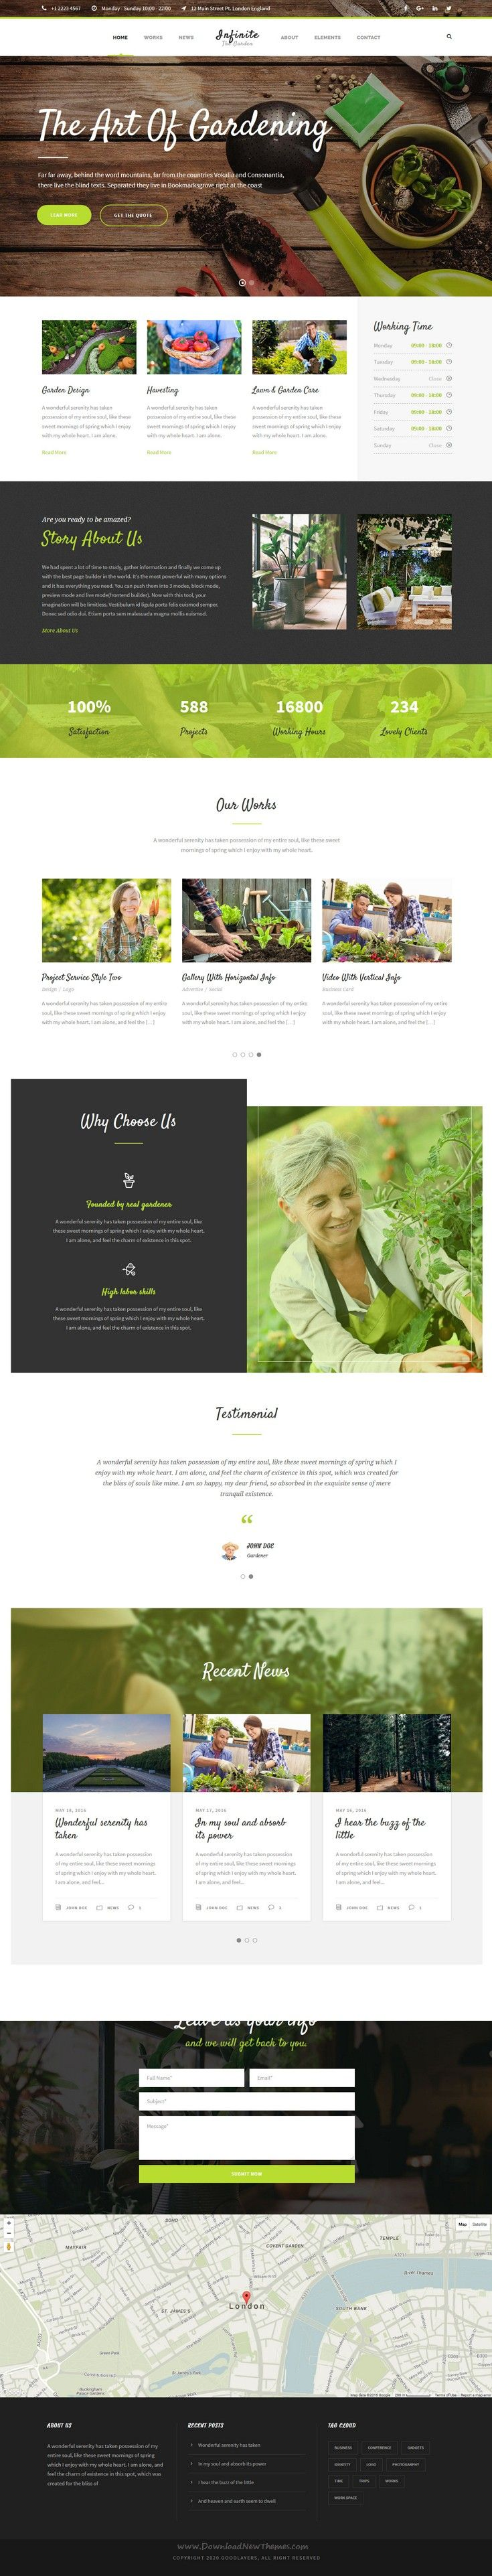 Infinite is well designed responsive WordPress theme for multipurpose amazing #website. #gardener Download Now!